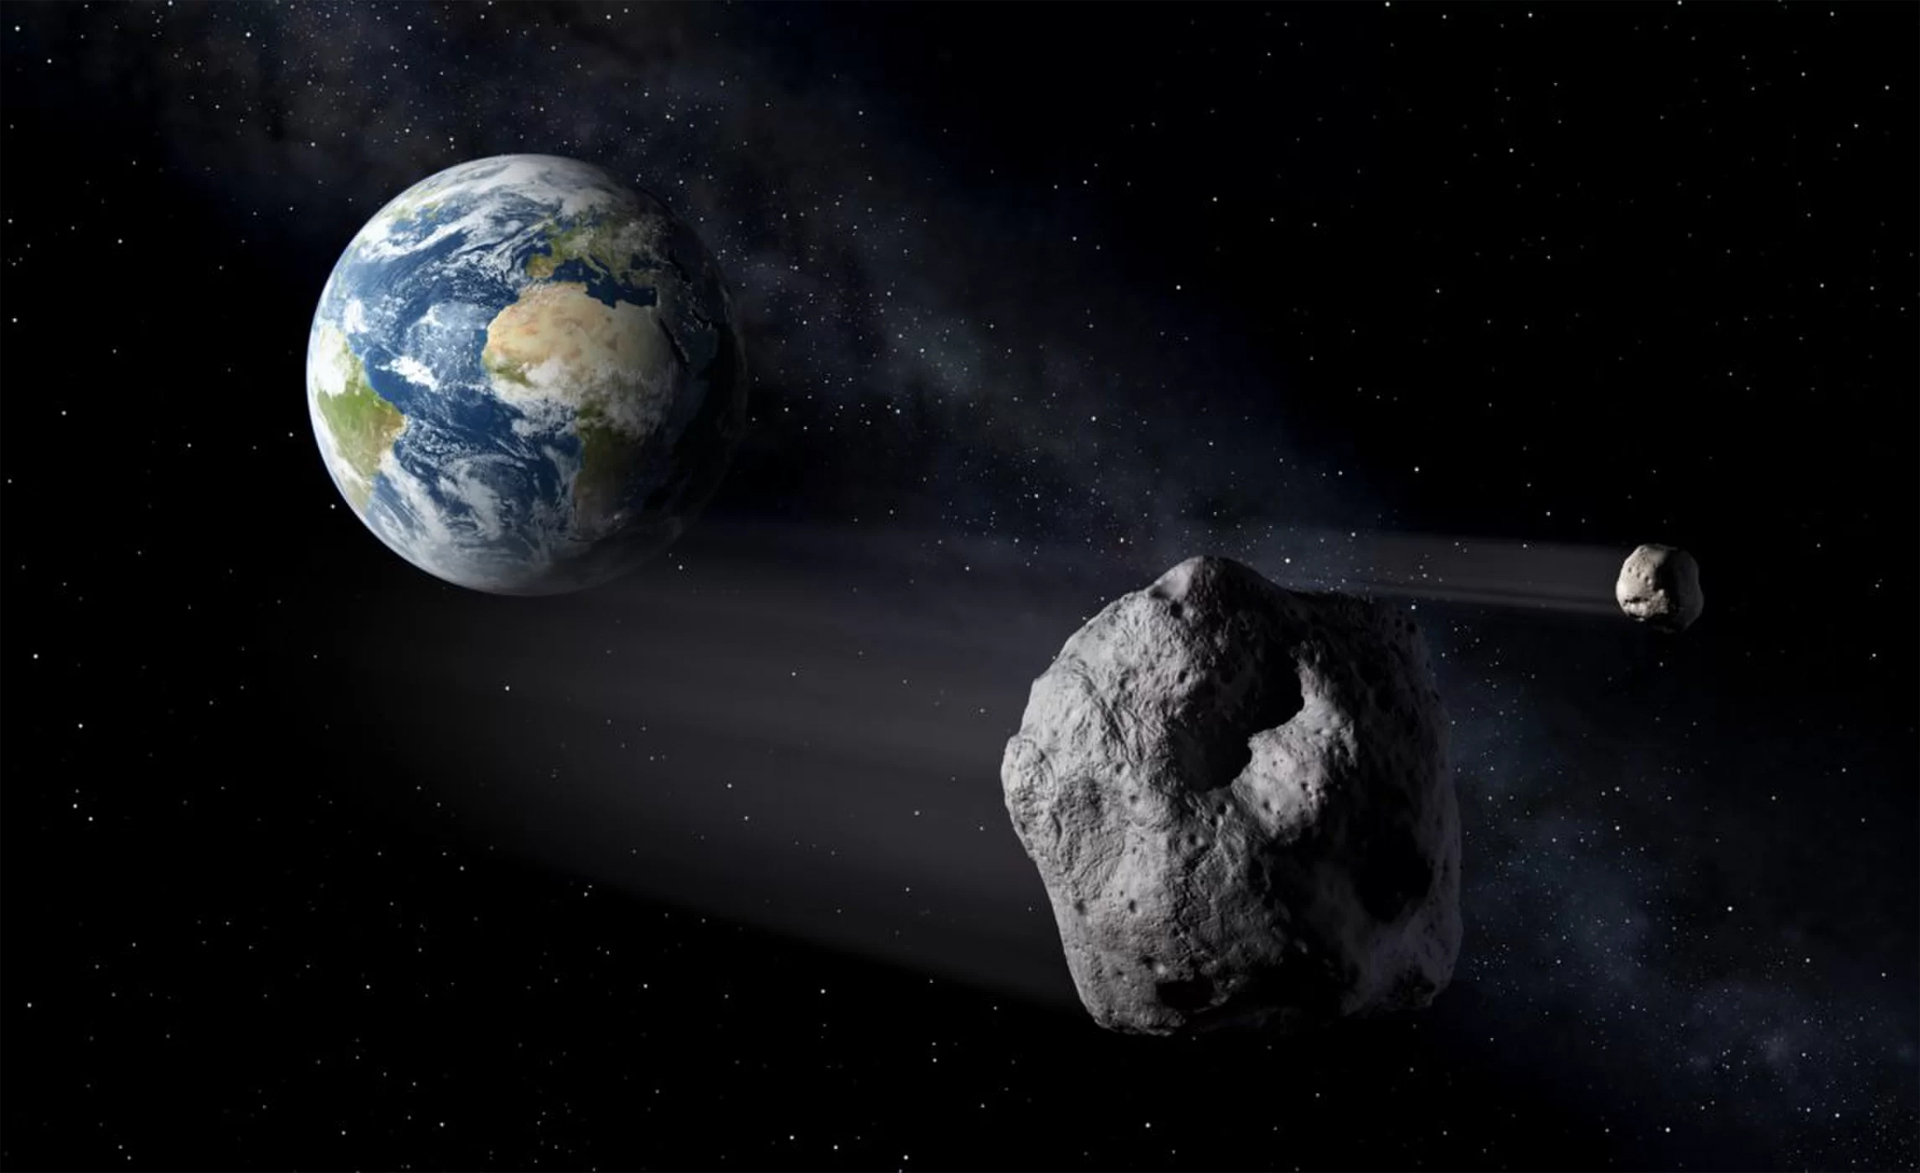 NASA emails reveal space agency unaware of 'city-killer' asteroid until last moment: 'This one did sneak up...